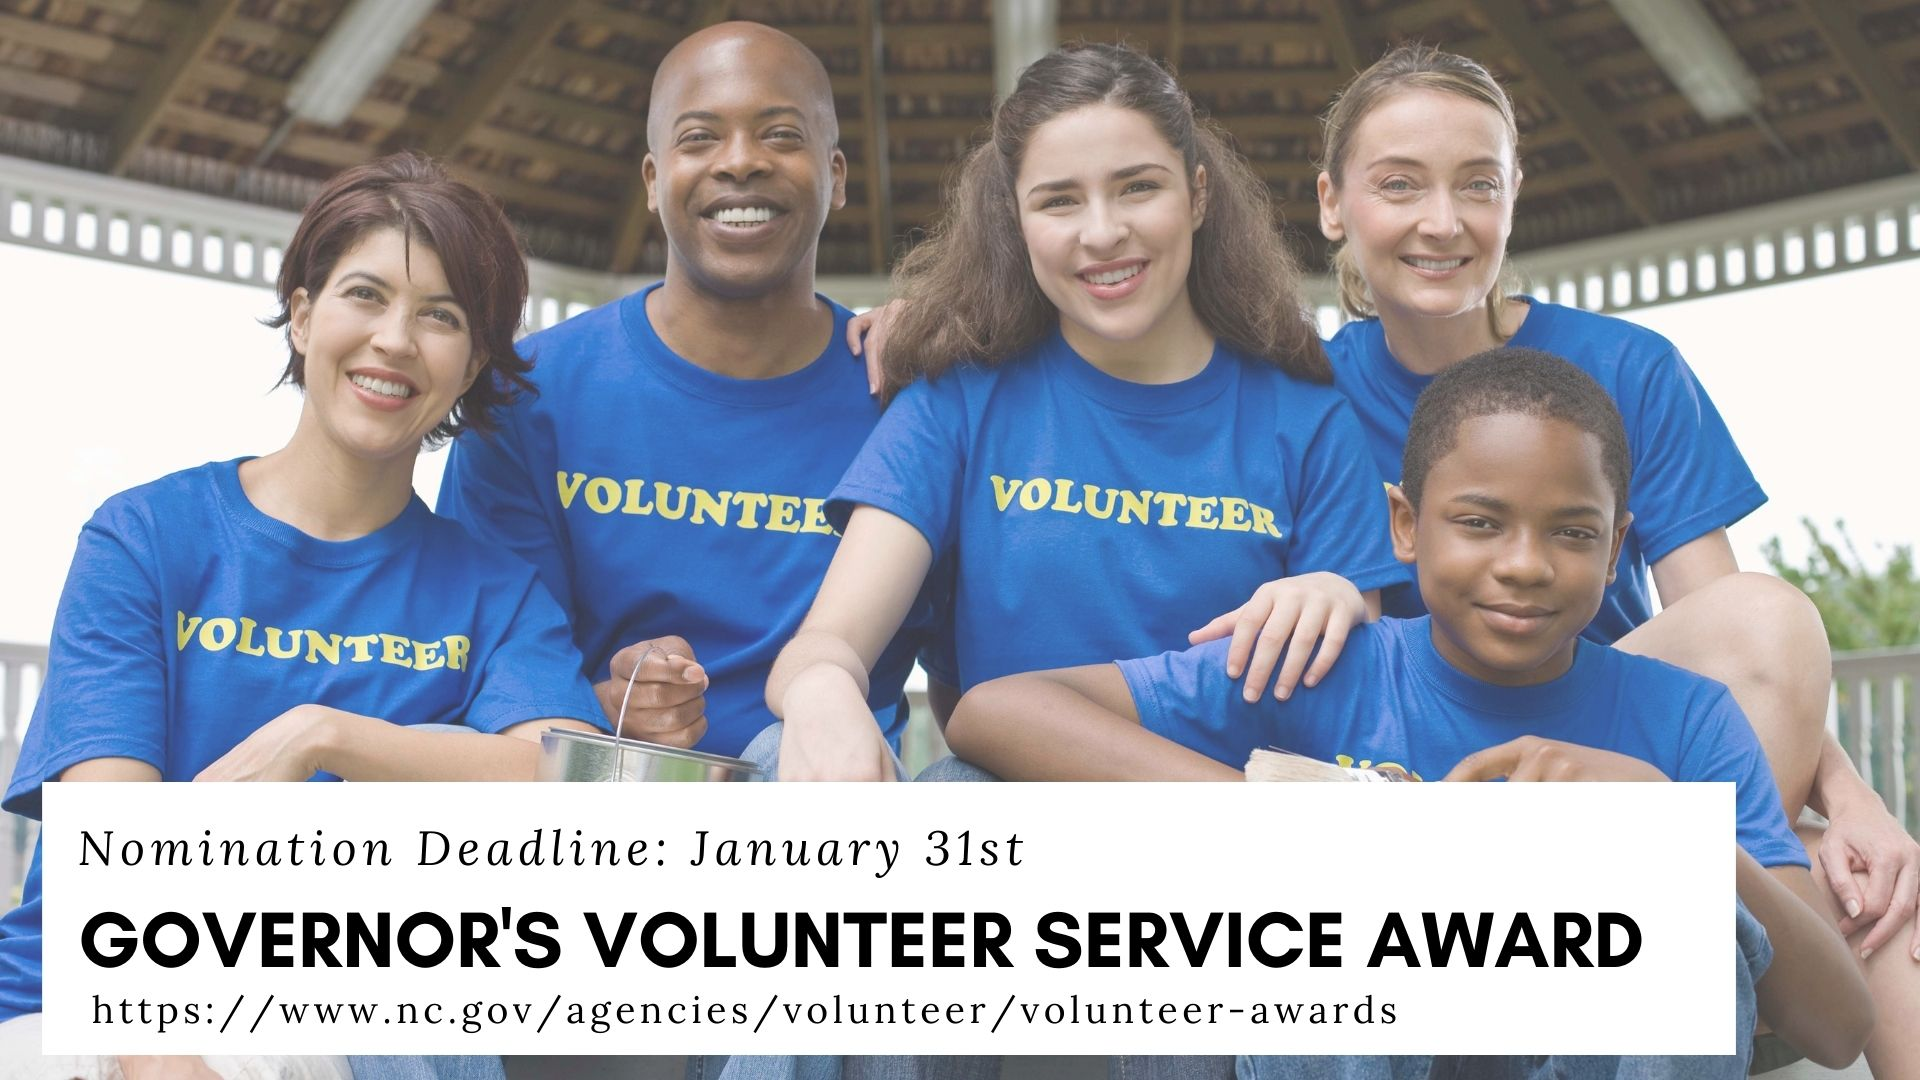 Governor's Volunteer Service Award Flyer-group of smiling people